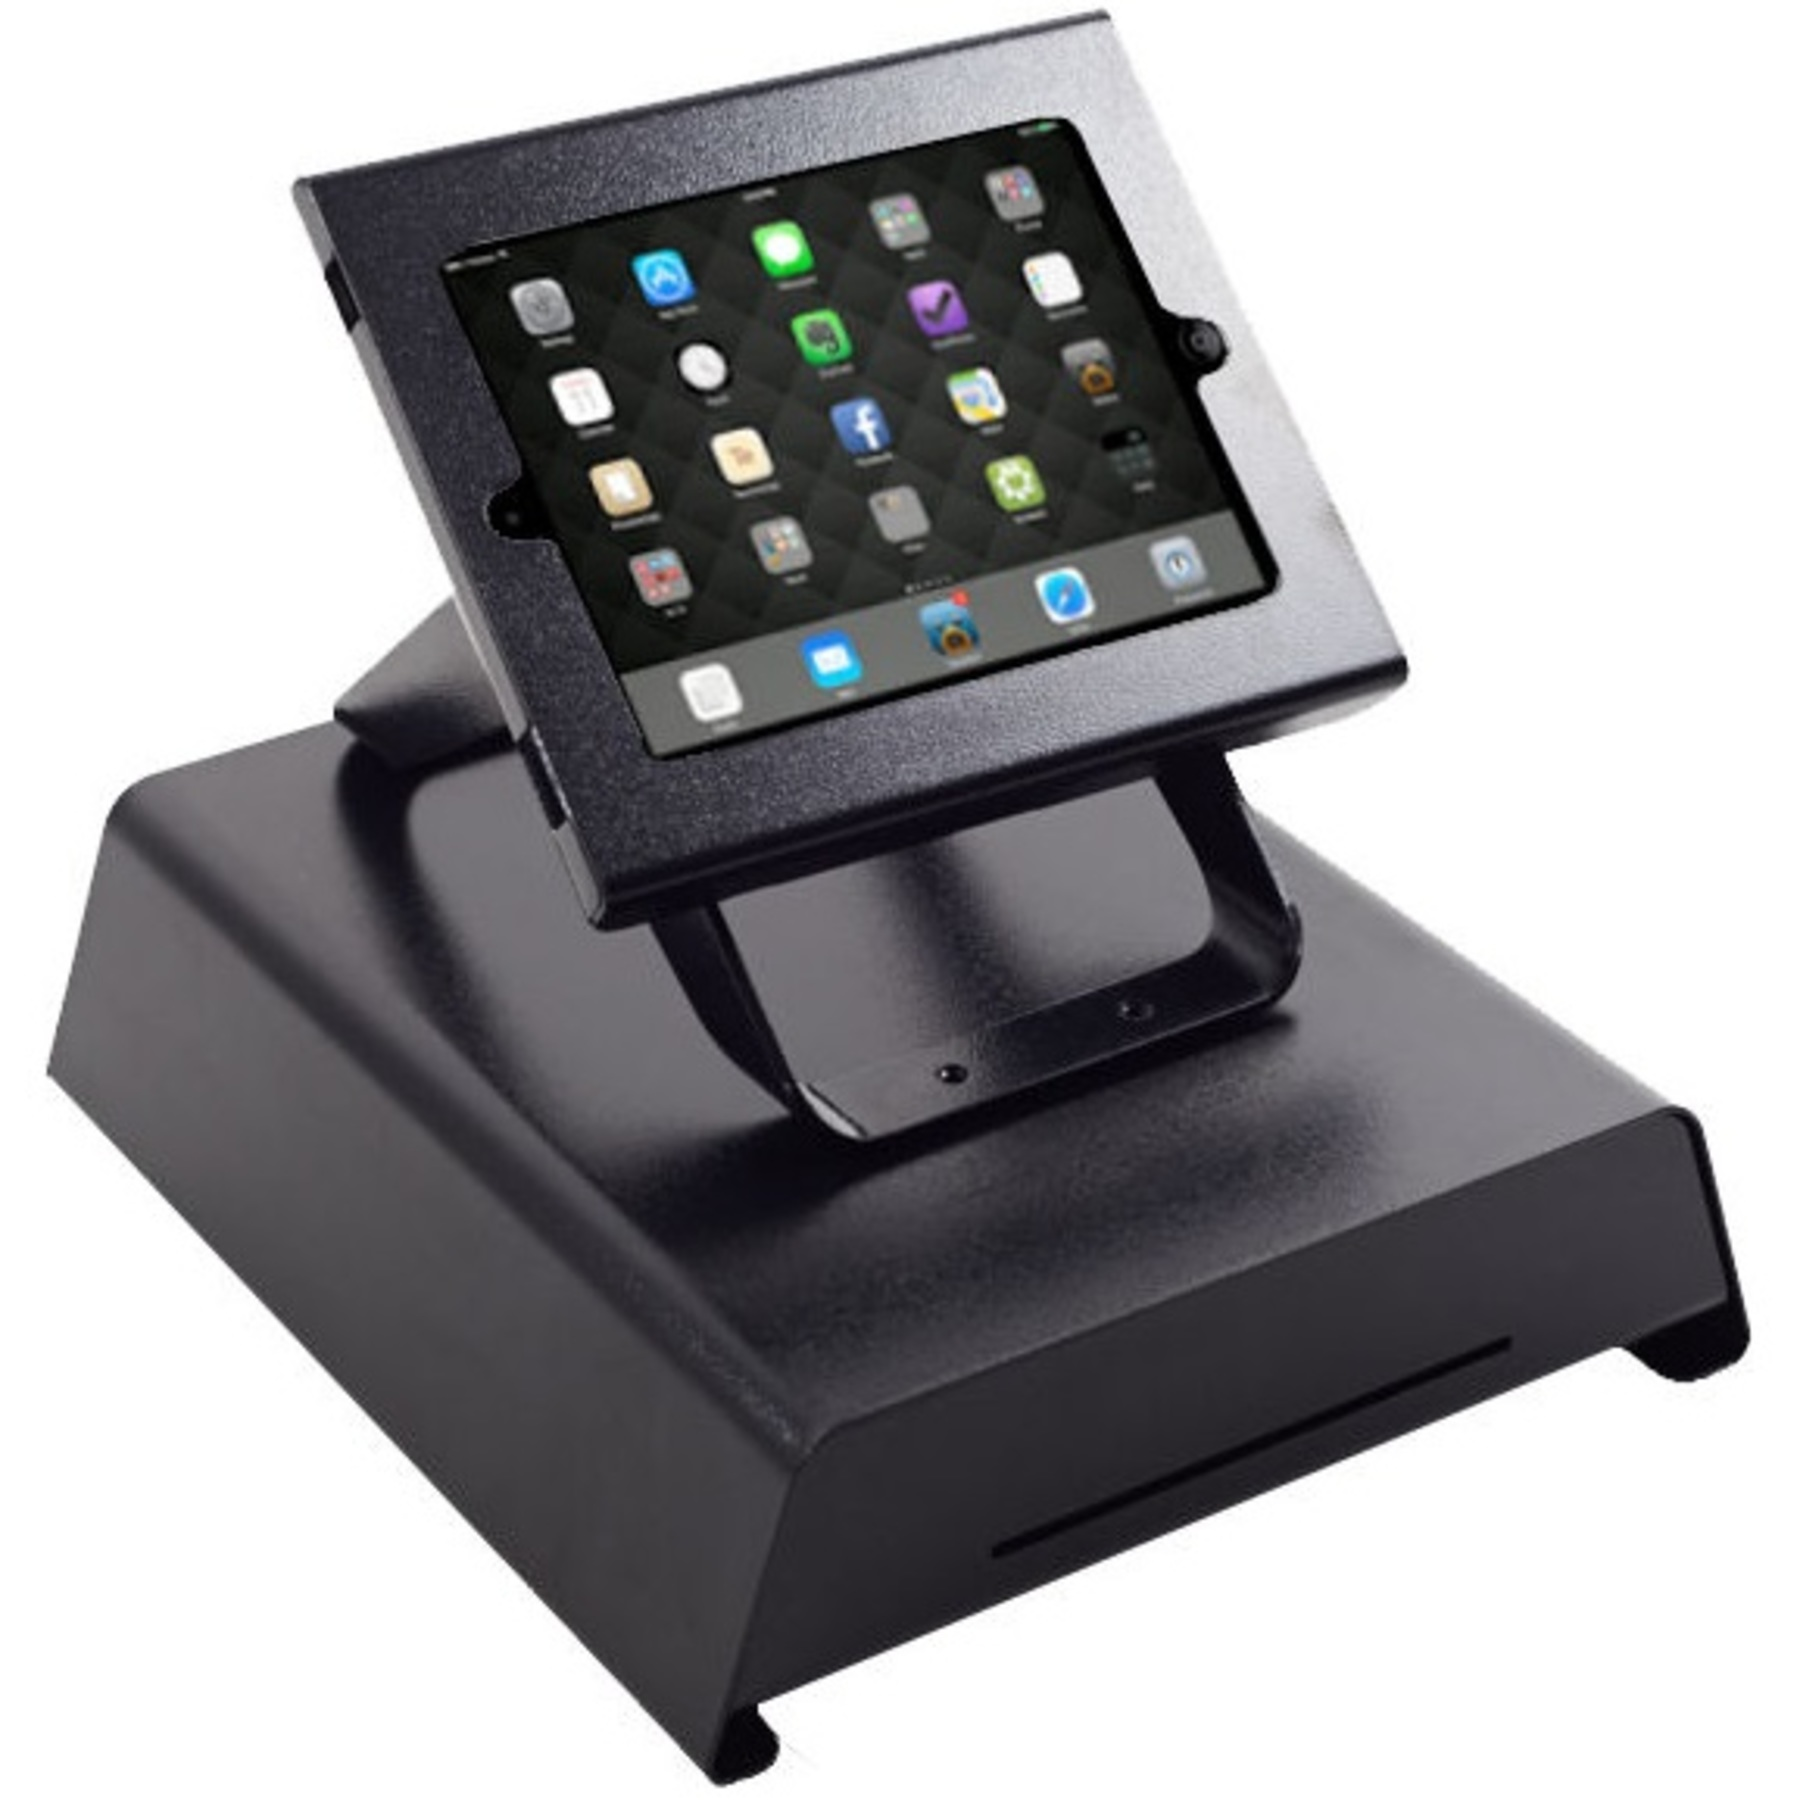 Cx350 Cash Drawer With Ipad Stand Cash Drawers Ireland